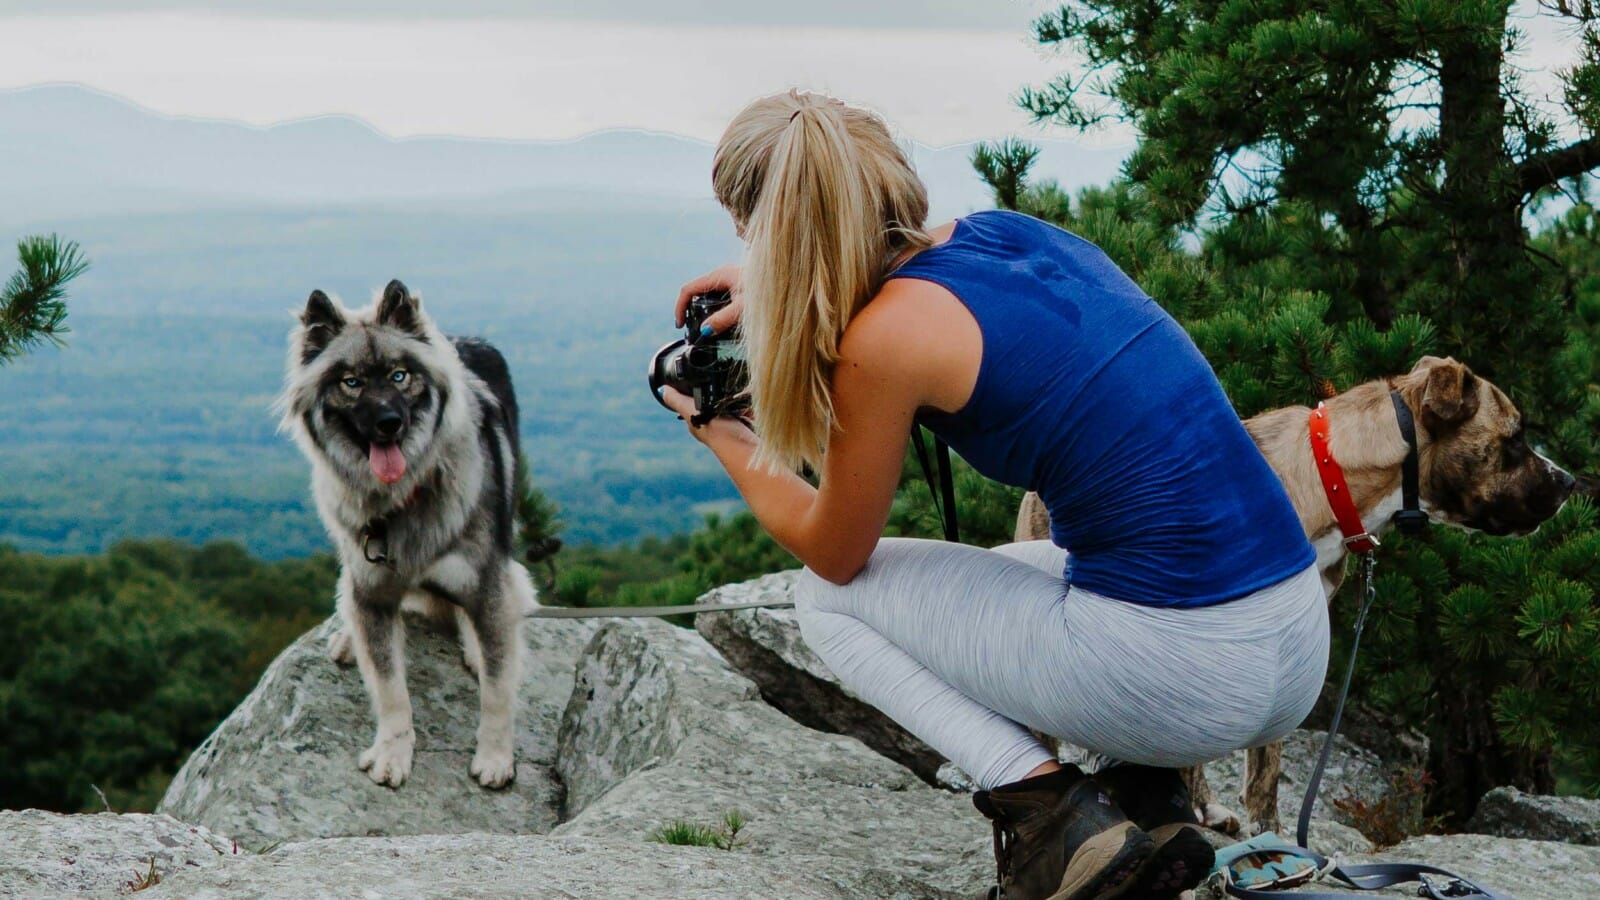 Person taking a photo of dogs on a cliffside